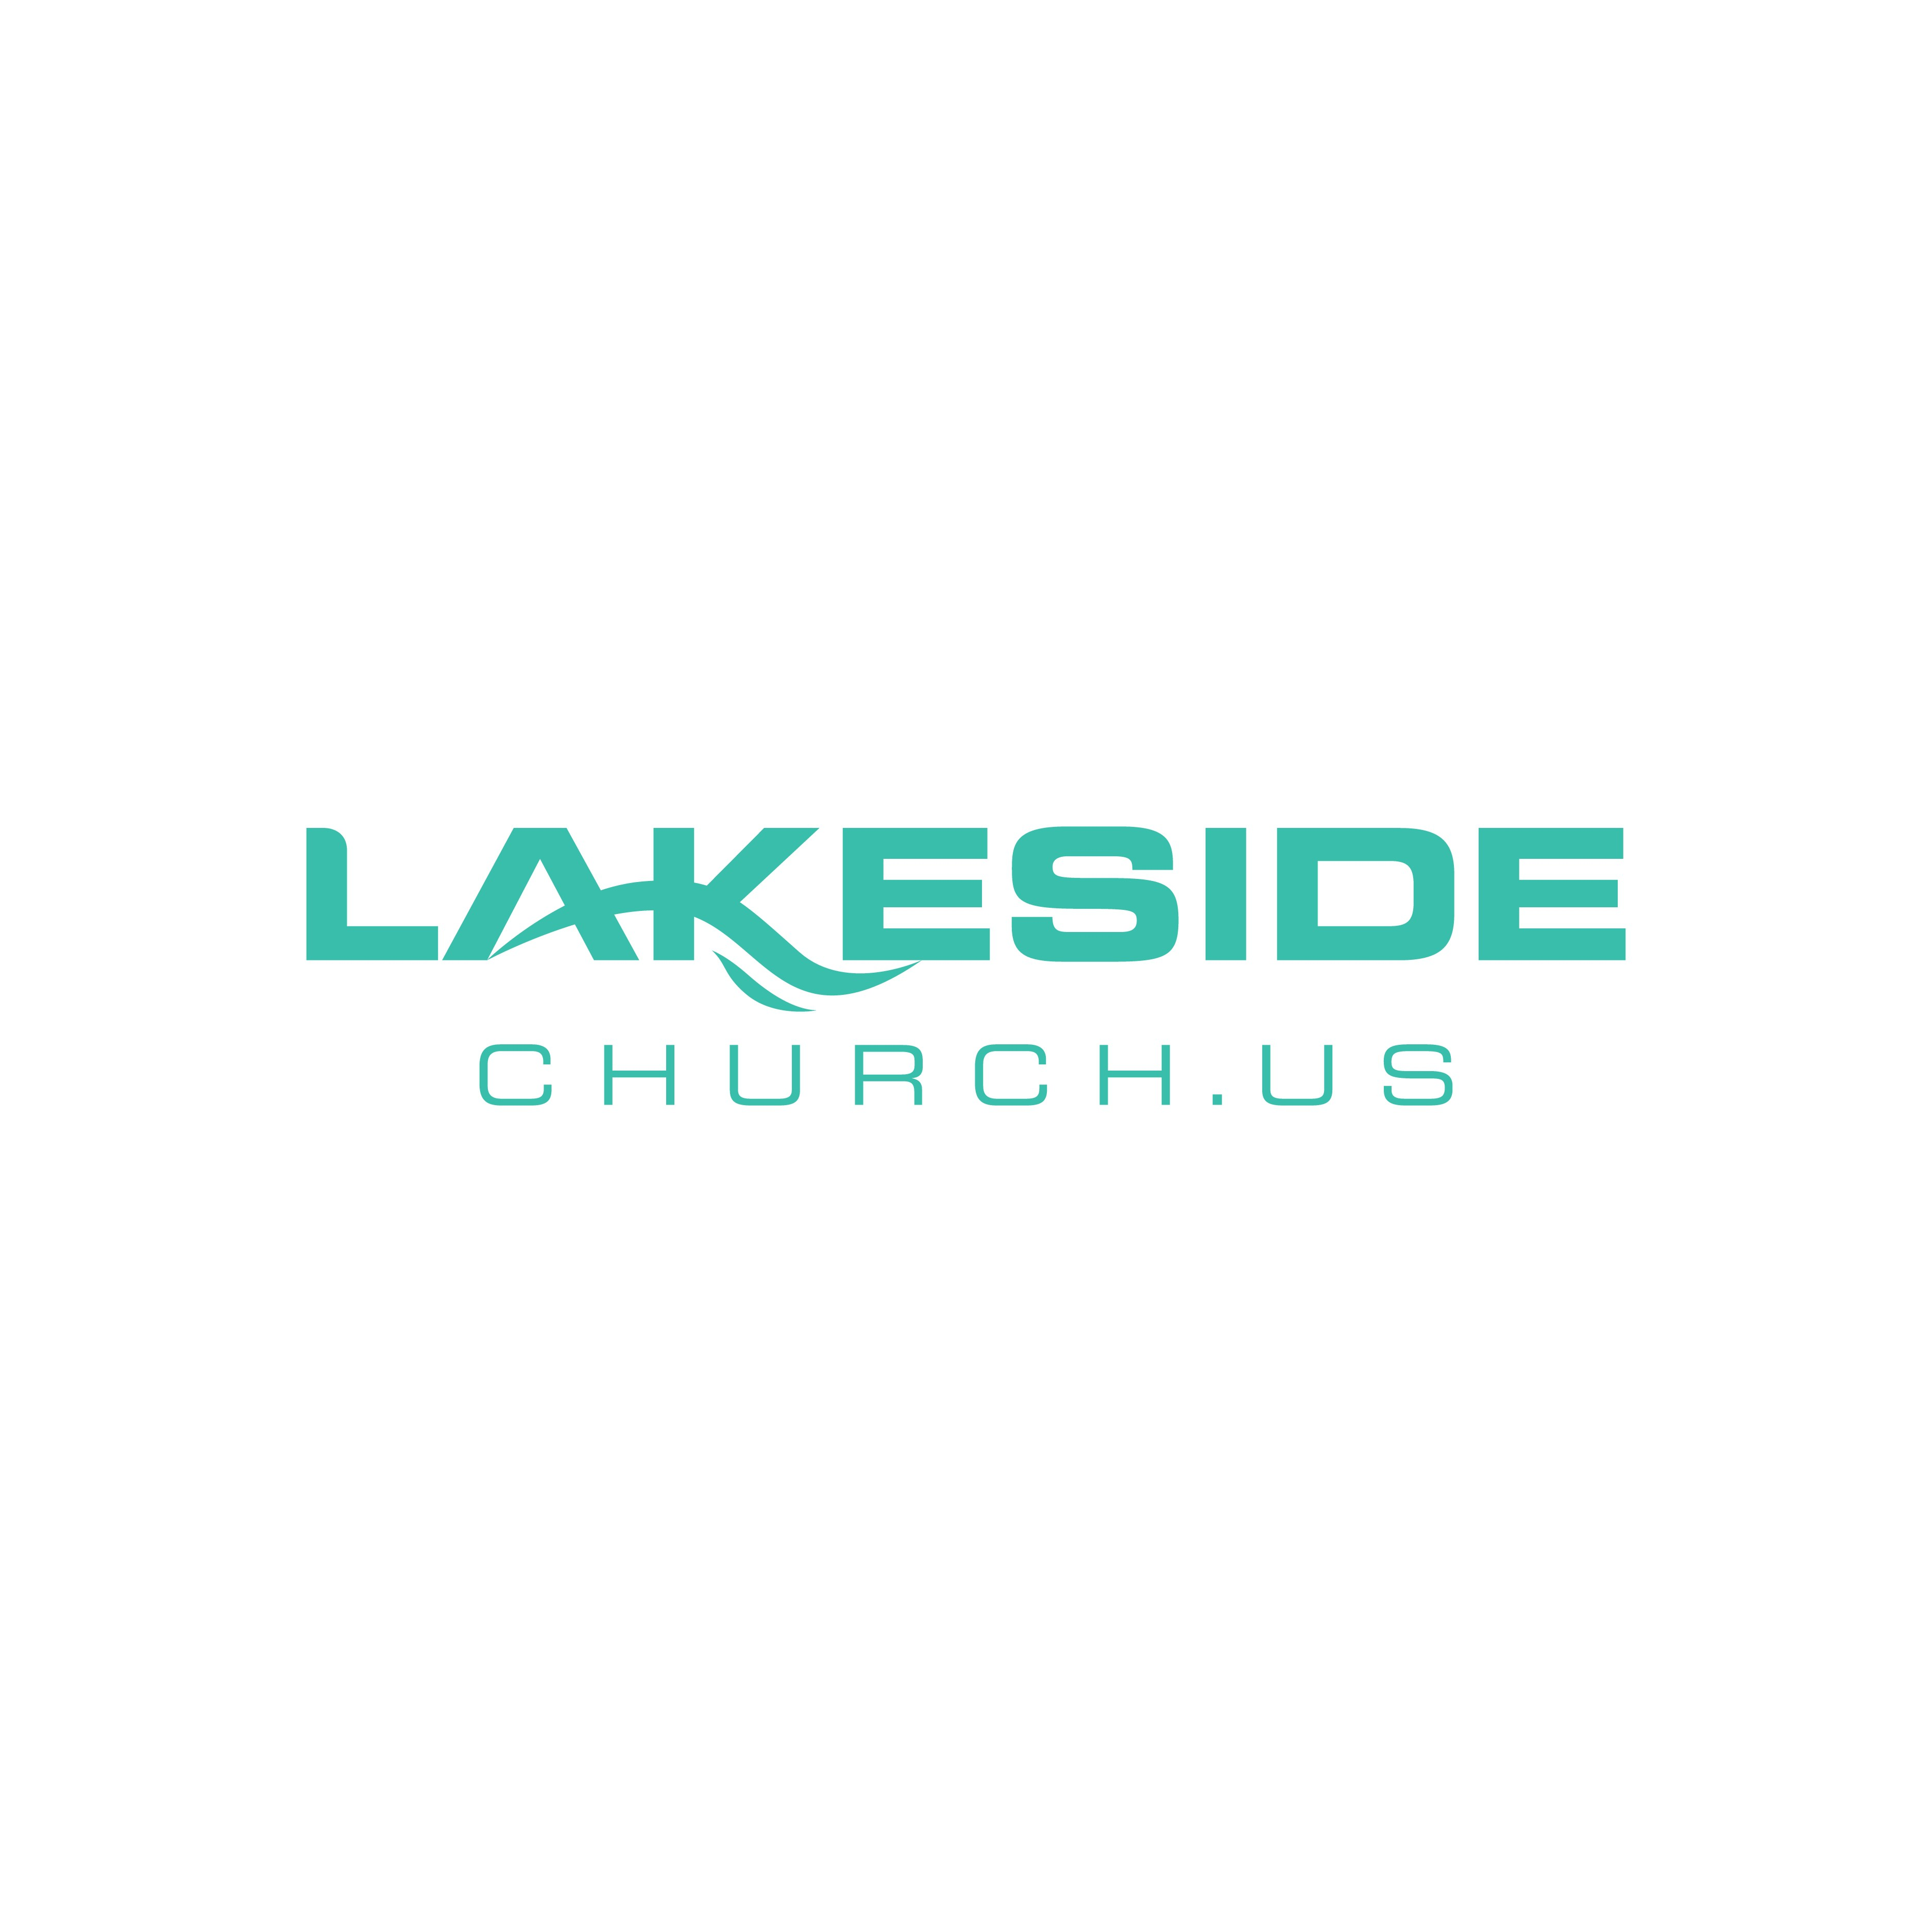 Create an awesome design for Lakeside Church